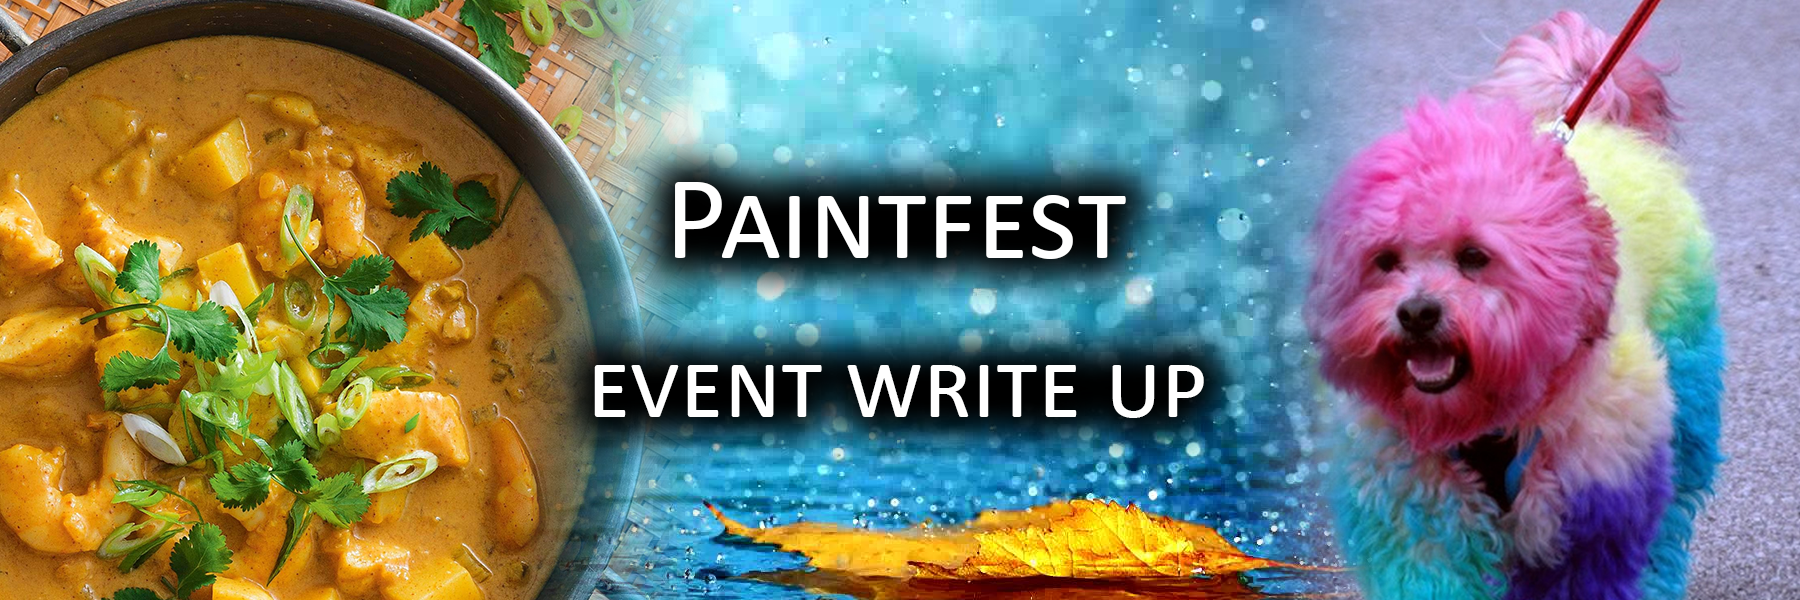 Paintfest Event Writeup